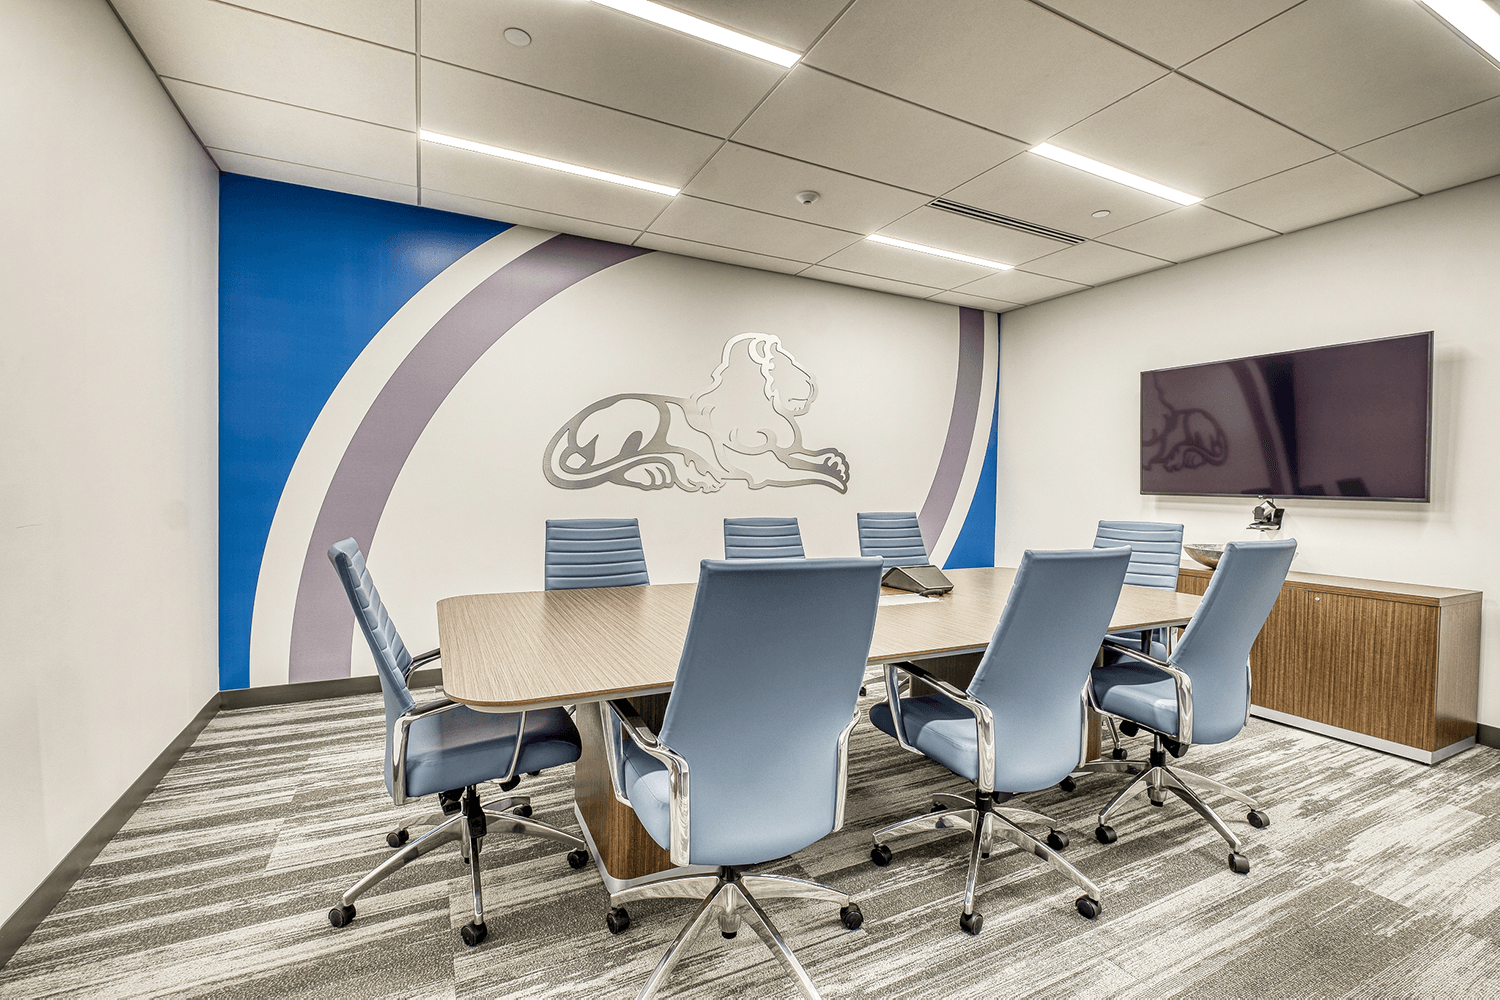 conference room with blue-gray chairs, a TV, and a large wall design featuring a metal lion outline